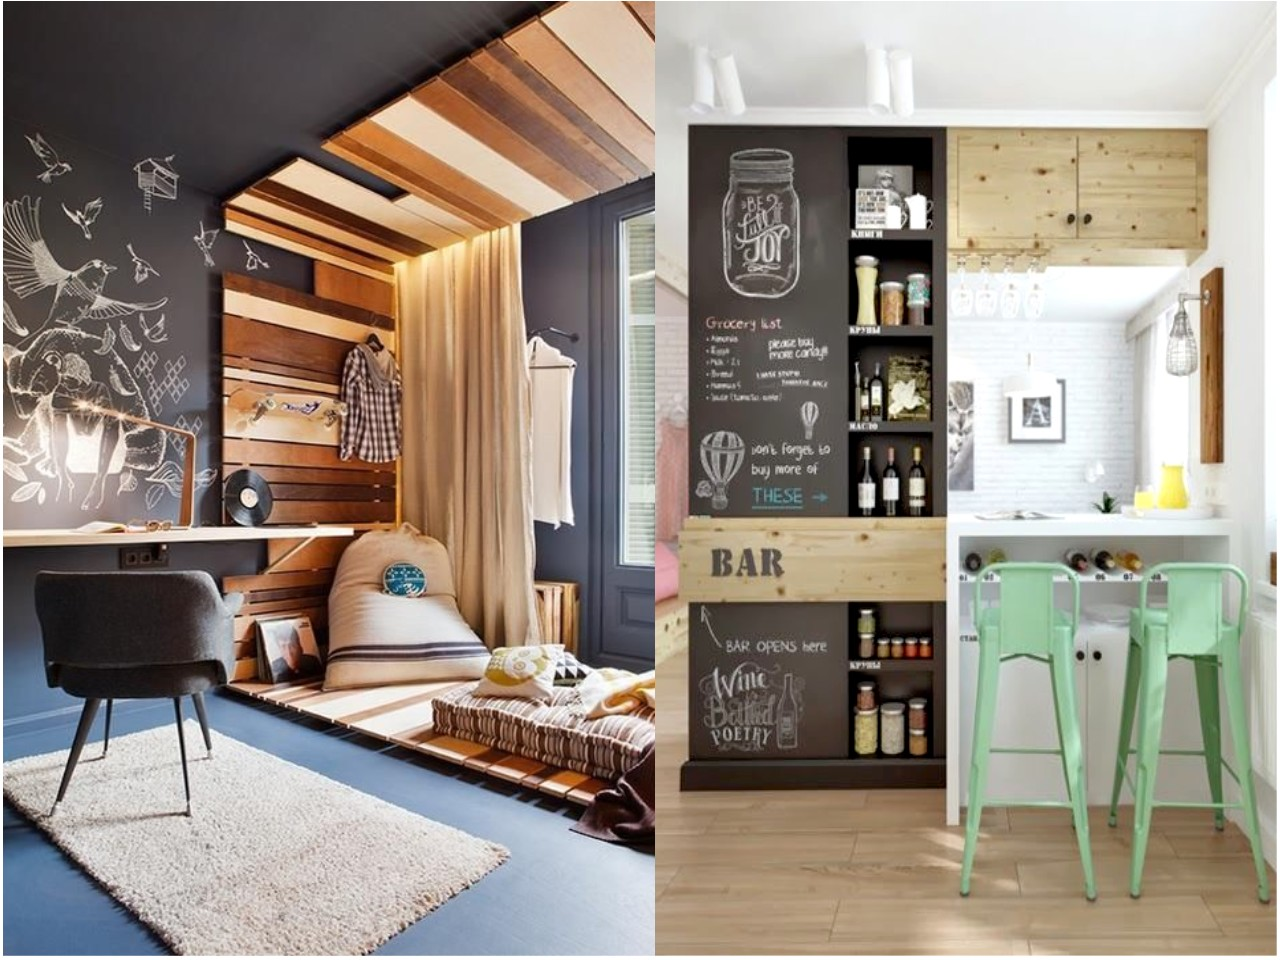 Las 6 mejores ideas de decoraci n con pizarras para casa - Ideas decoracion bar ...